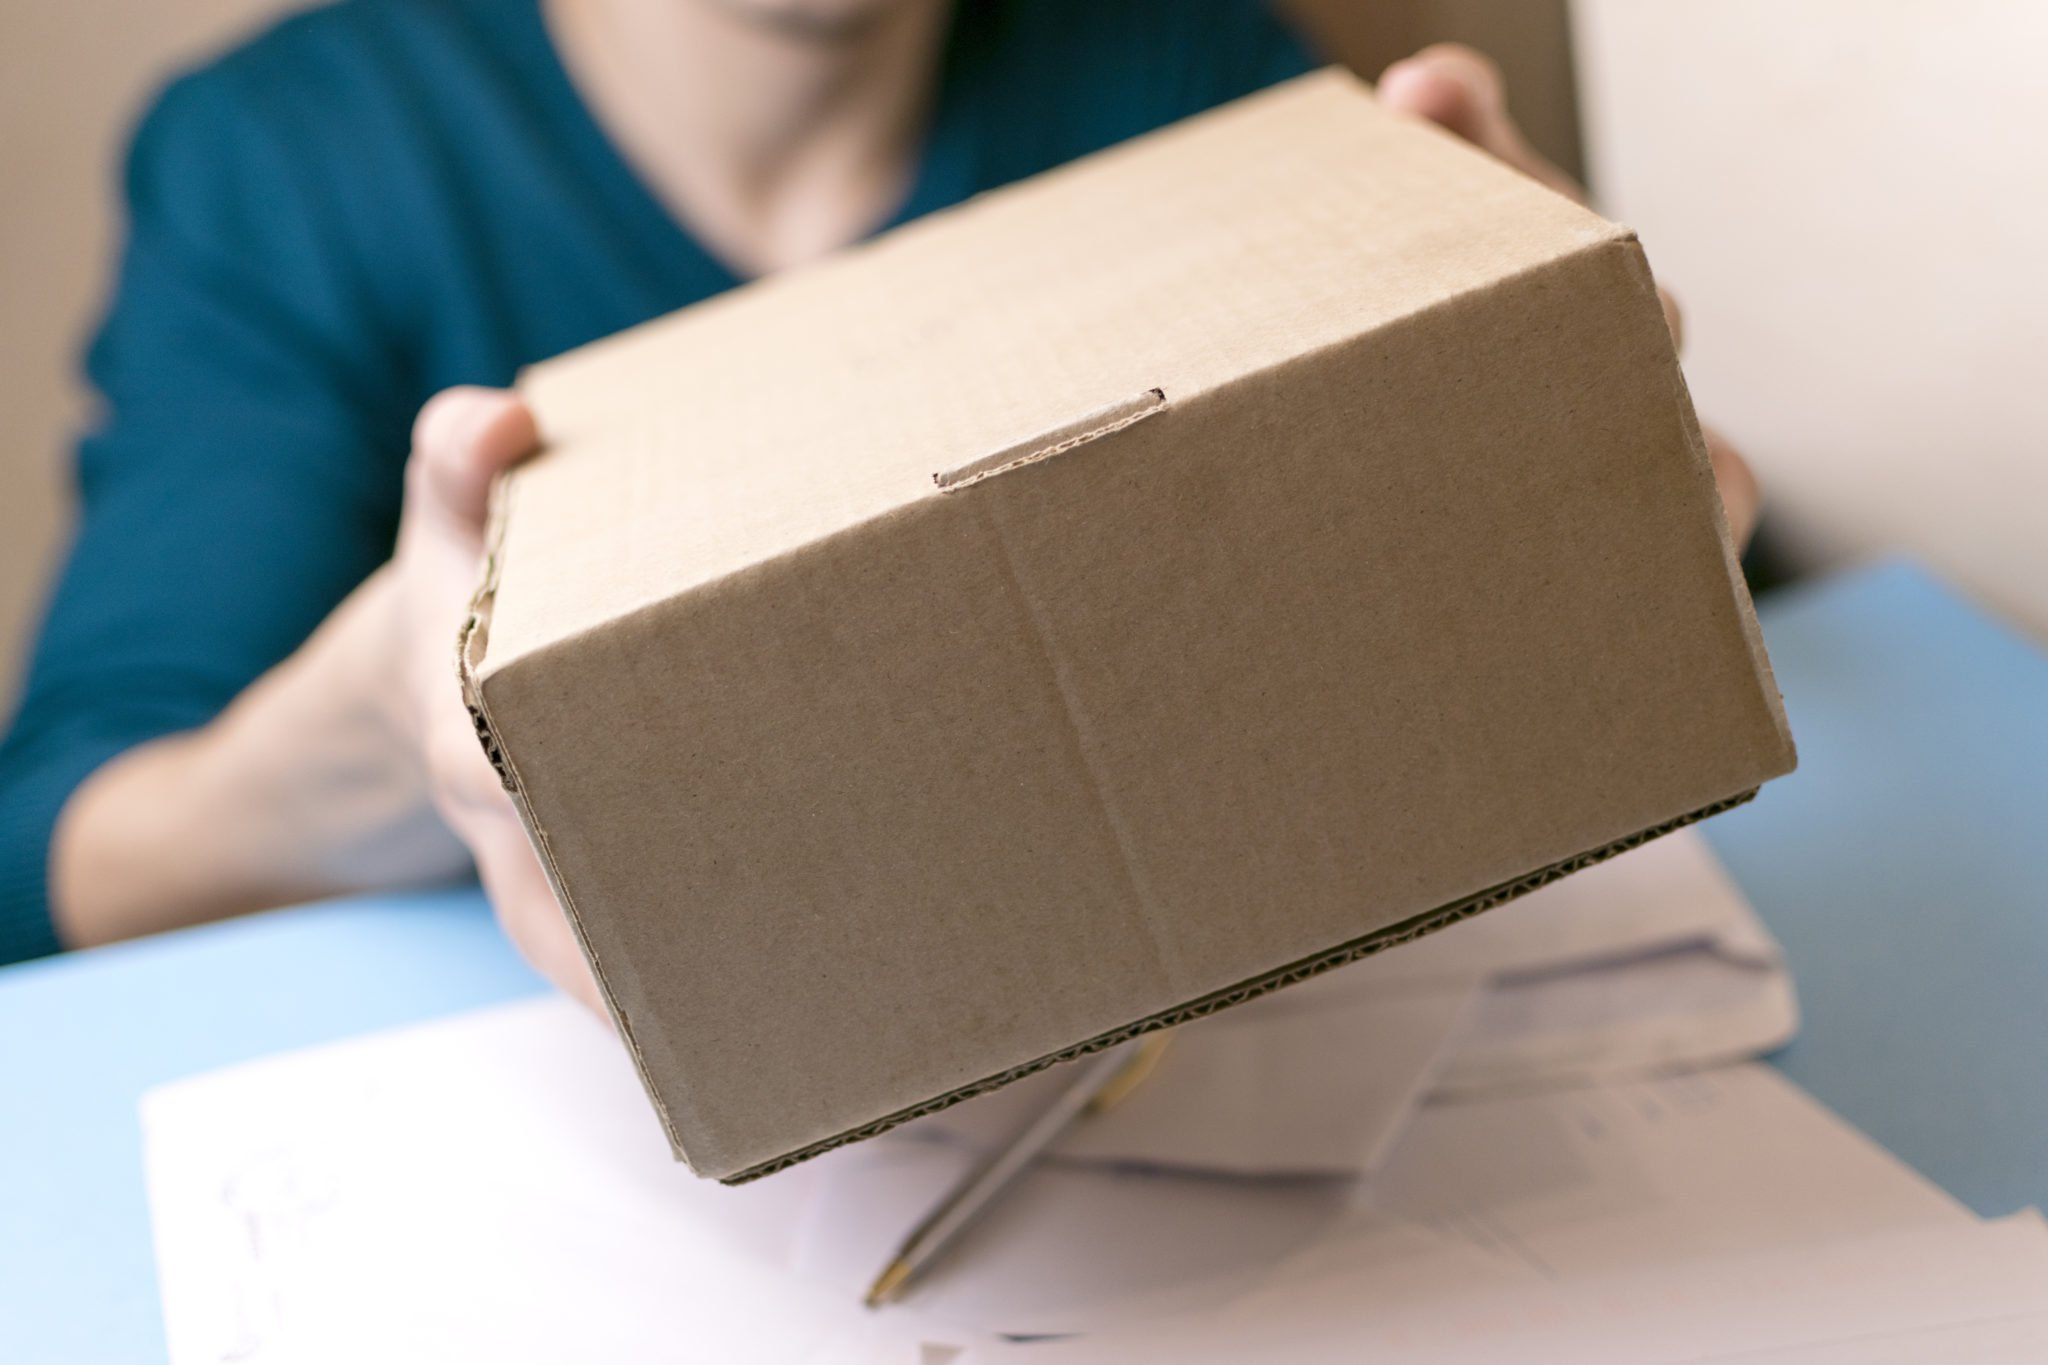 Point of view photo of a person mailing a cardboard box hands it off to a worker. Although there may continue to be court challenges, recent court rulings clearly establish a solid precedent making it legal to send hemp by mail.